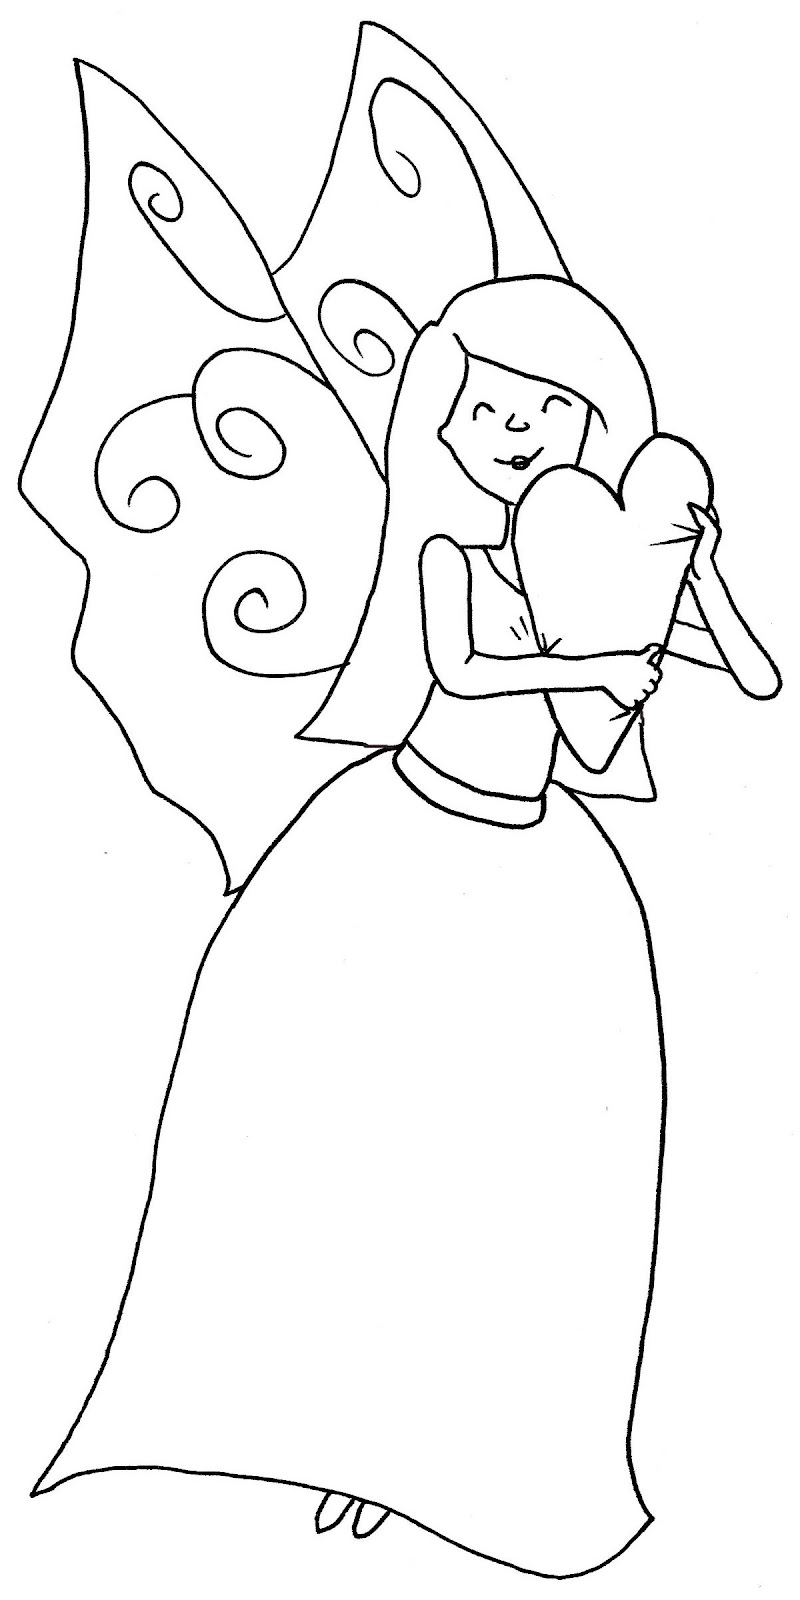 tokidoki colouring pages page 2